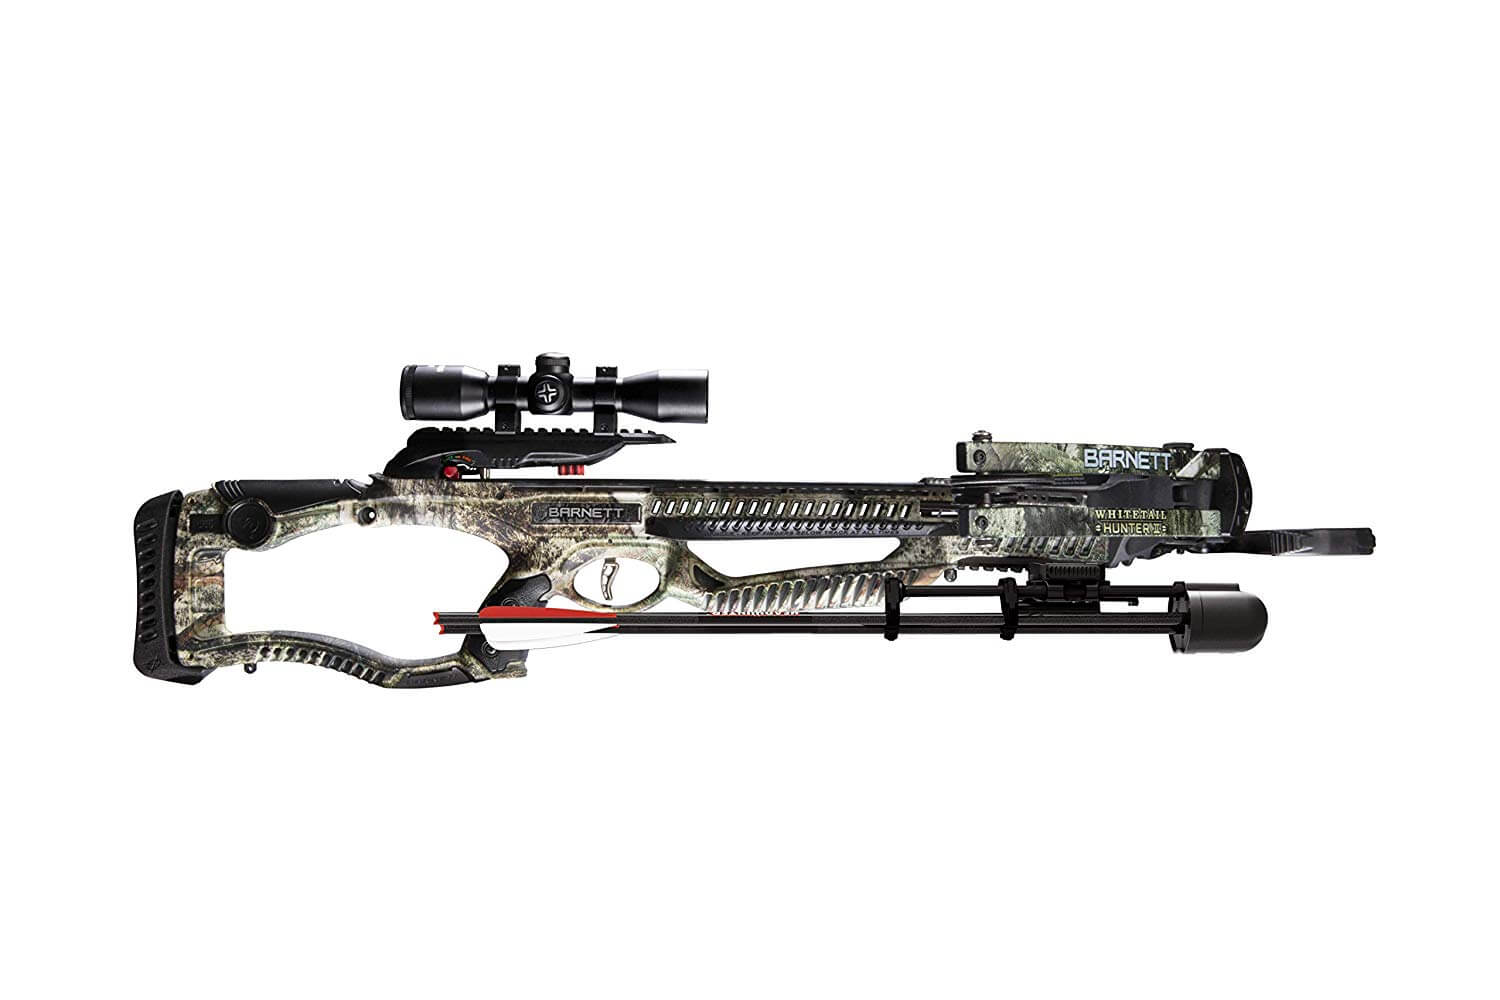 The Barnett Whitetail Hunter II crossbow is a compound crossbow and features a  4x32mm Multi-Reticle Scope.